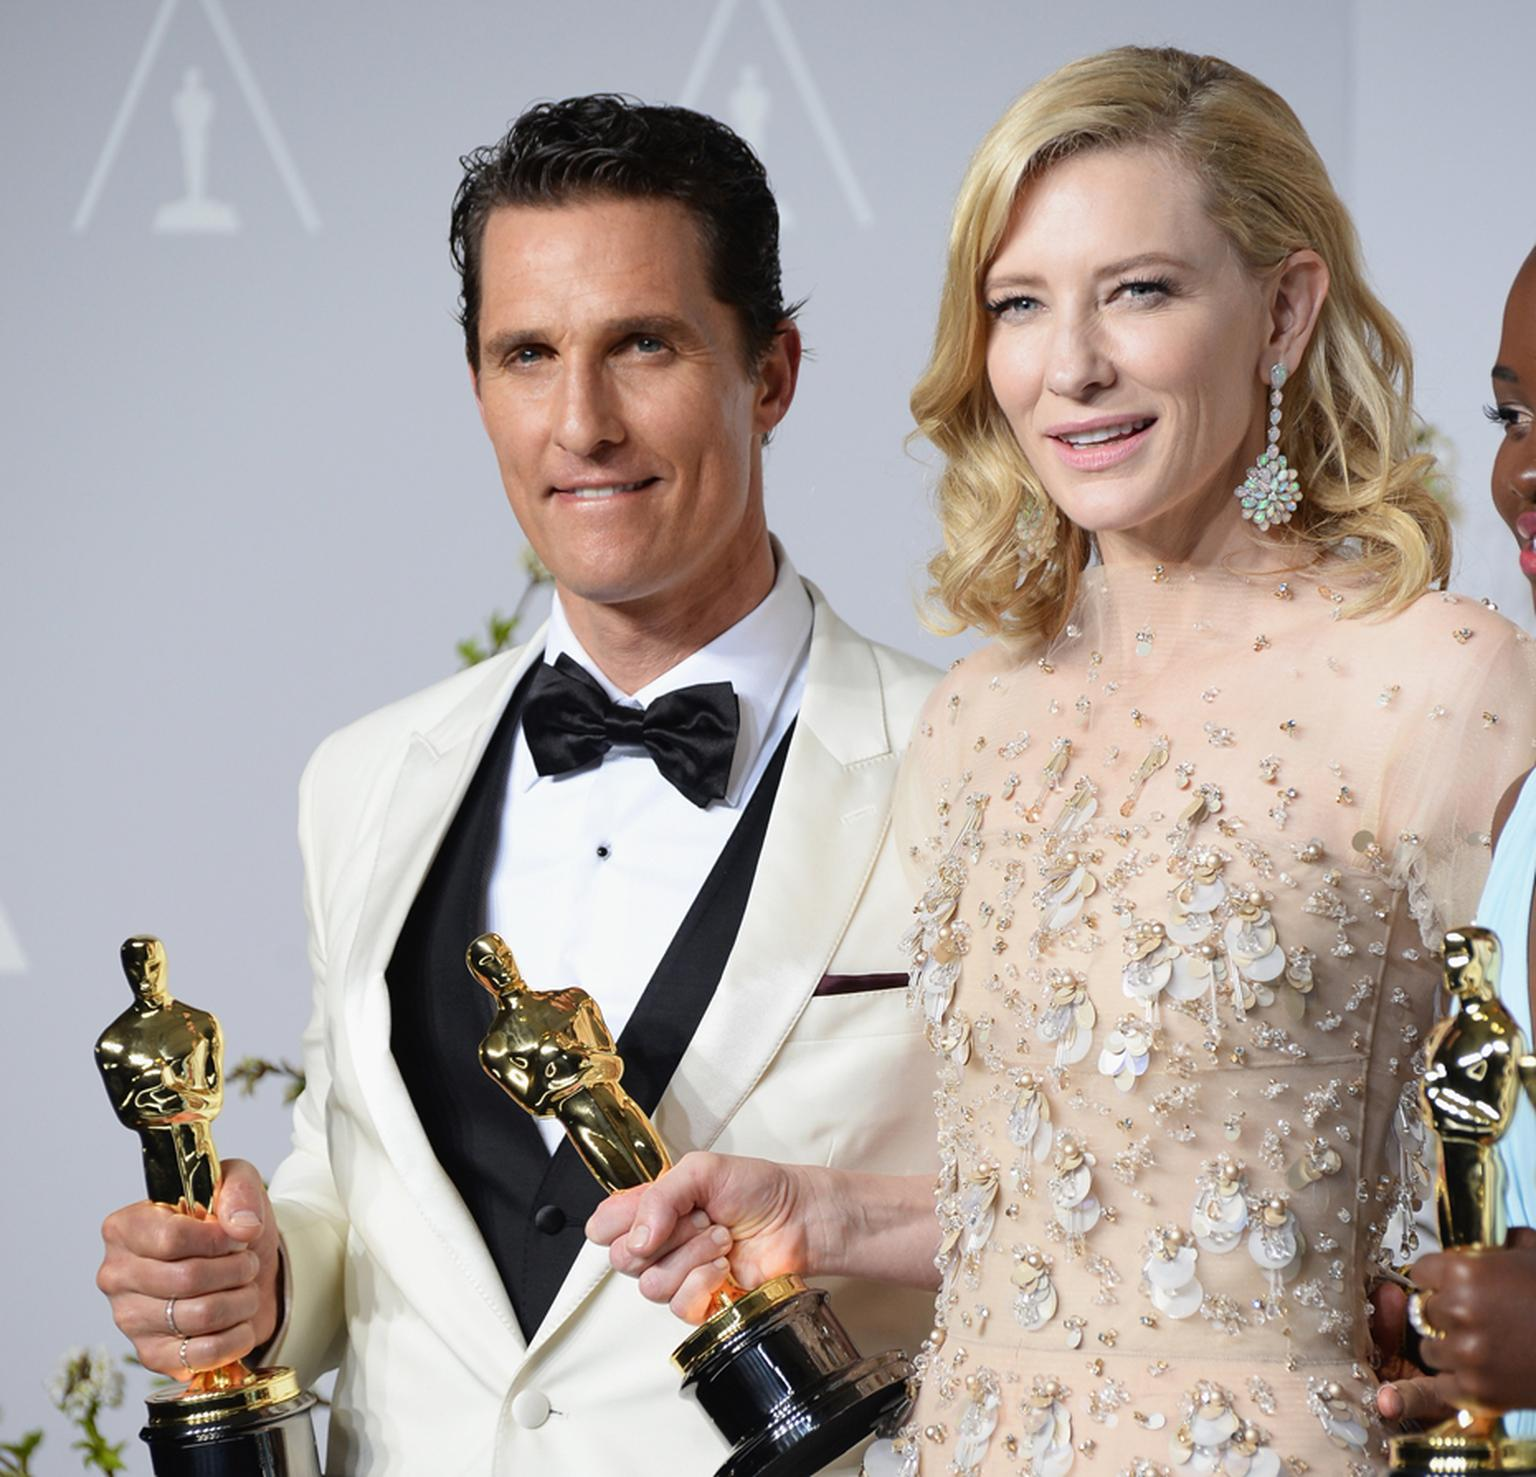 Matthew McConaughey and Cate Blanchett pose with their Academy Awards